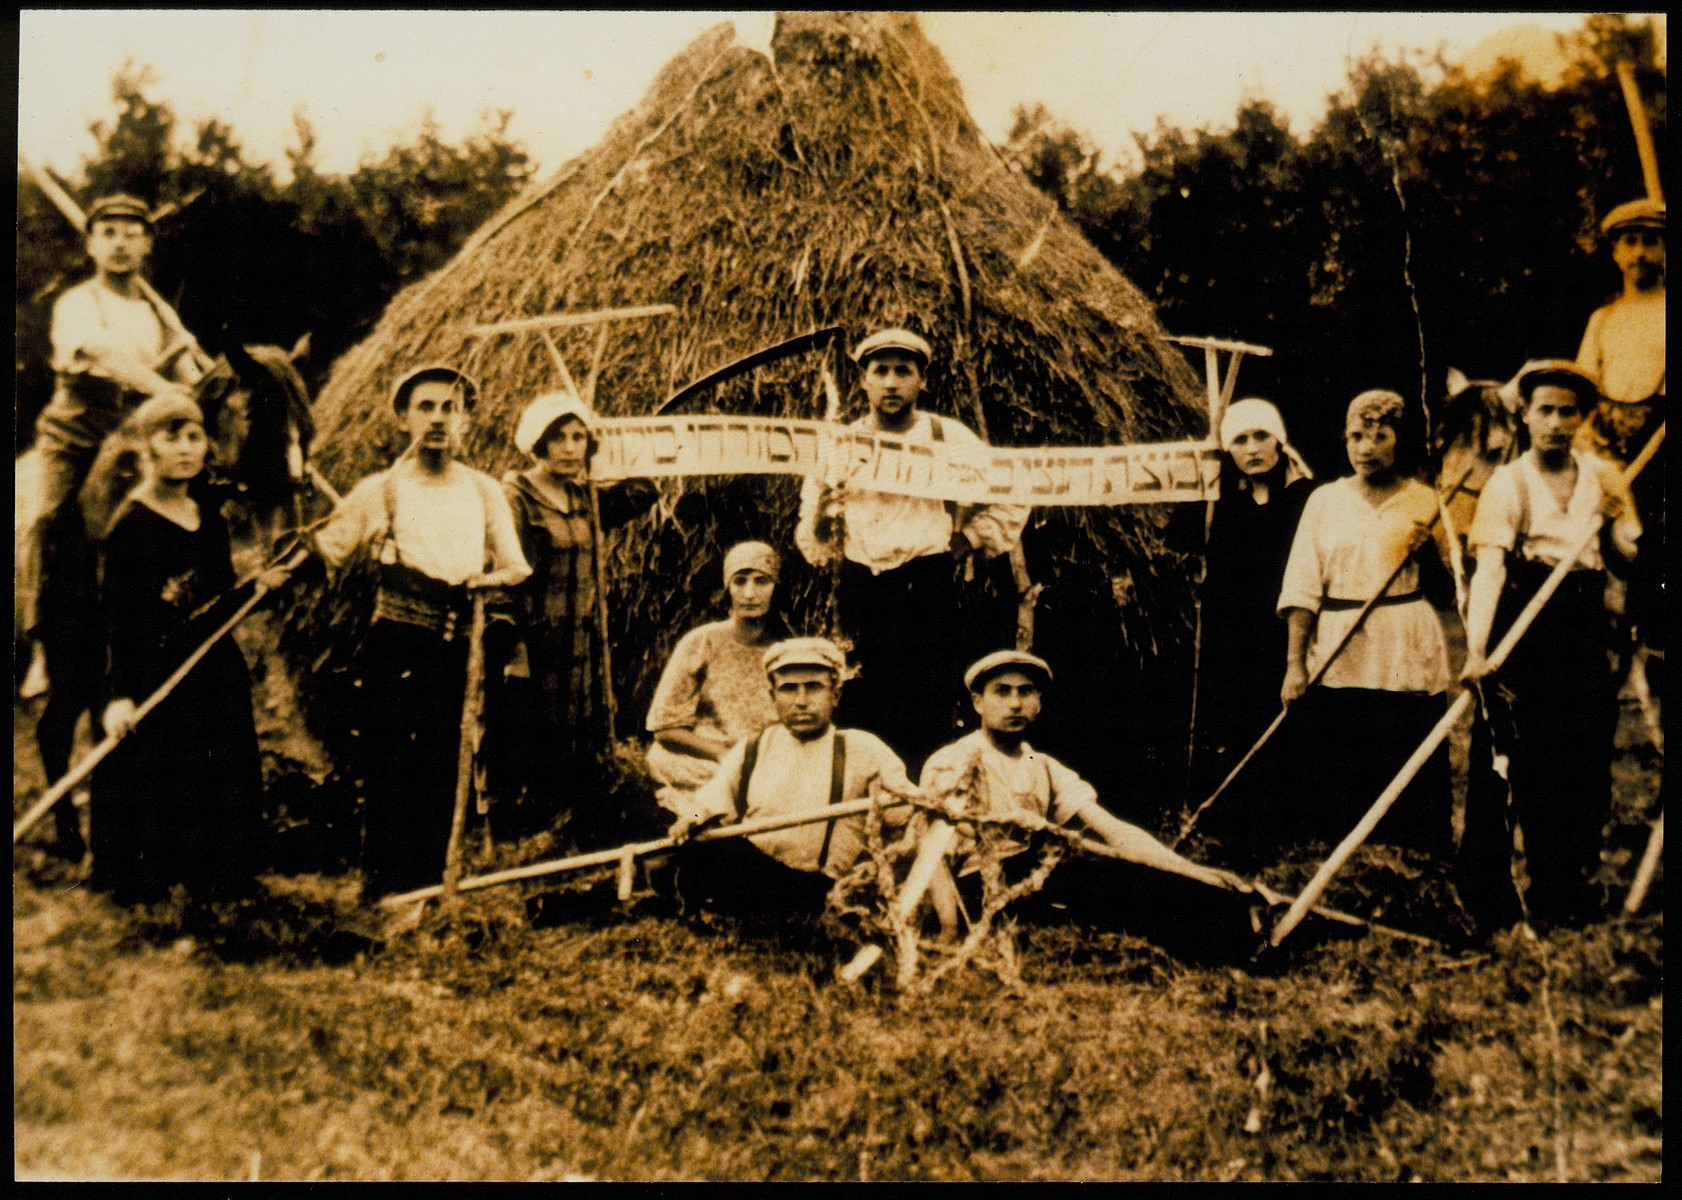 "Members of the Neziv group of the Hehalutz Hamizrahi from Volozhin pose with their rakes in front of a large haystack.  Standing from right to left: Rivka Miriam Nameut, Leibl Liberman, Zirl last name unknown, Etle Shishko, Moshe Yaakov Perah (Kviat), Fradl Berman, Shmuel Dovid Ohali (Nameut), Shaindl, daughter of Rabbi Shimon ""der Bord"".  Sitting on the ground from right to left: Moshe Golob, Leibl Sheptnitziki, Malka Shishko.  On the horses: Areyeh Harutz on the right and Yossef Goldstein, a descendant of the Koutsai family, on the left.    Yossef Goldstein and a number of others immigrated to Palestine."